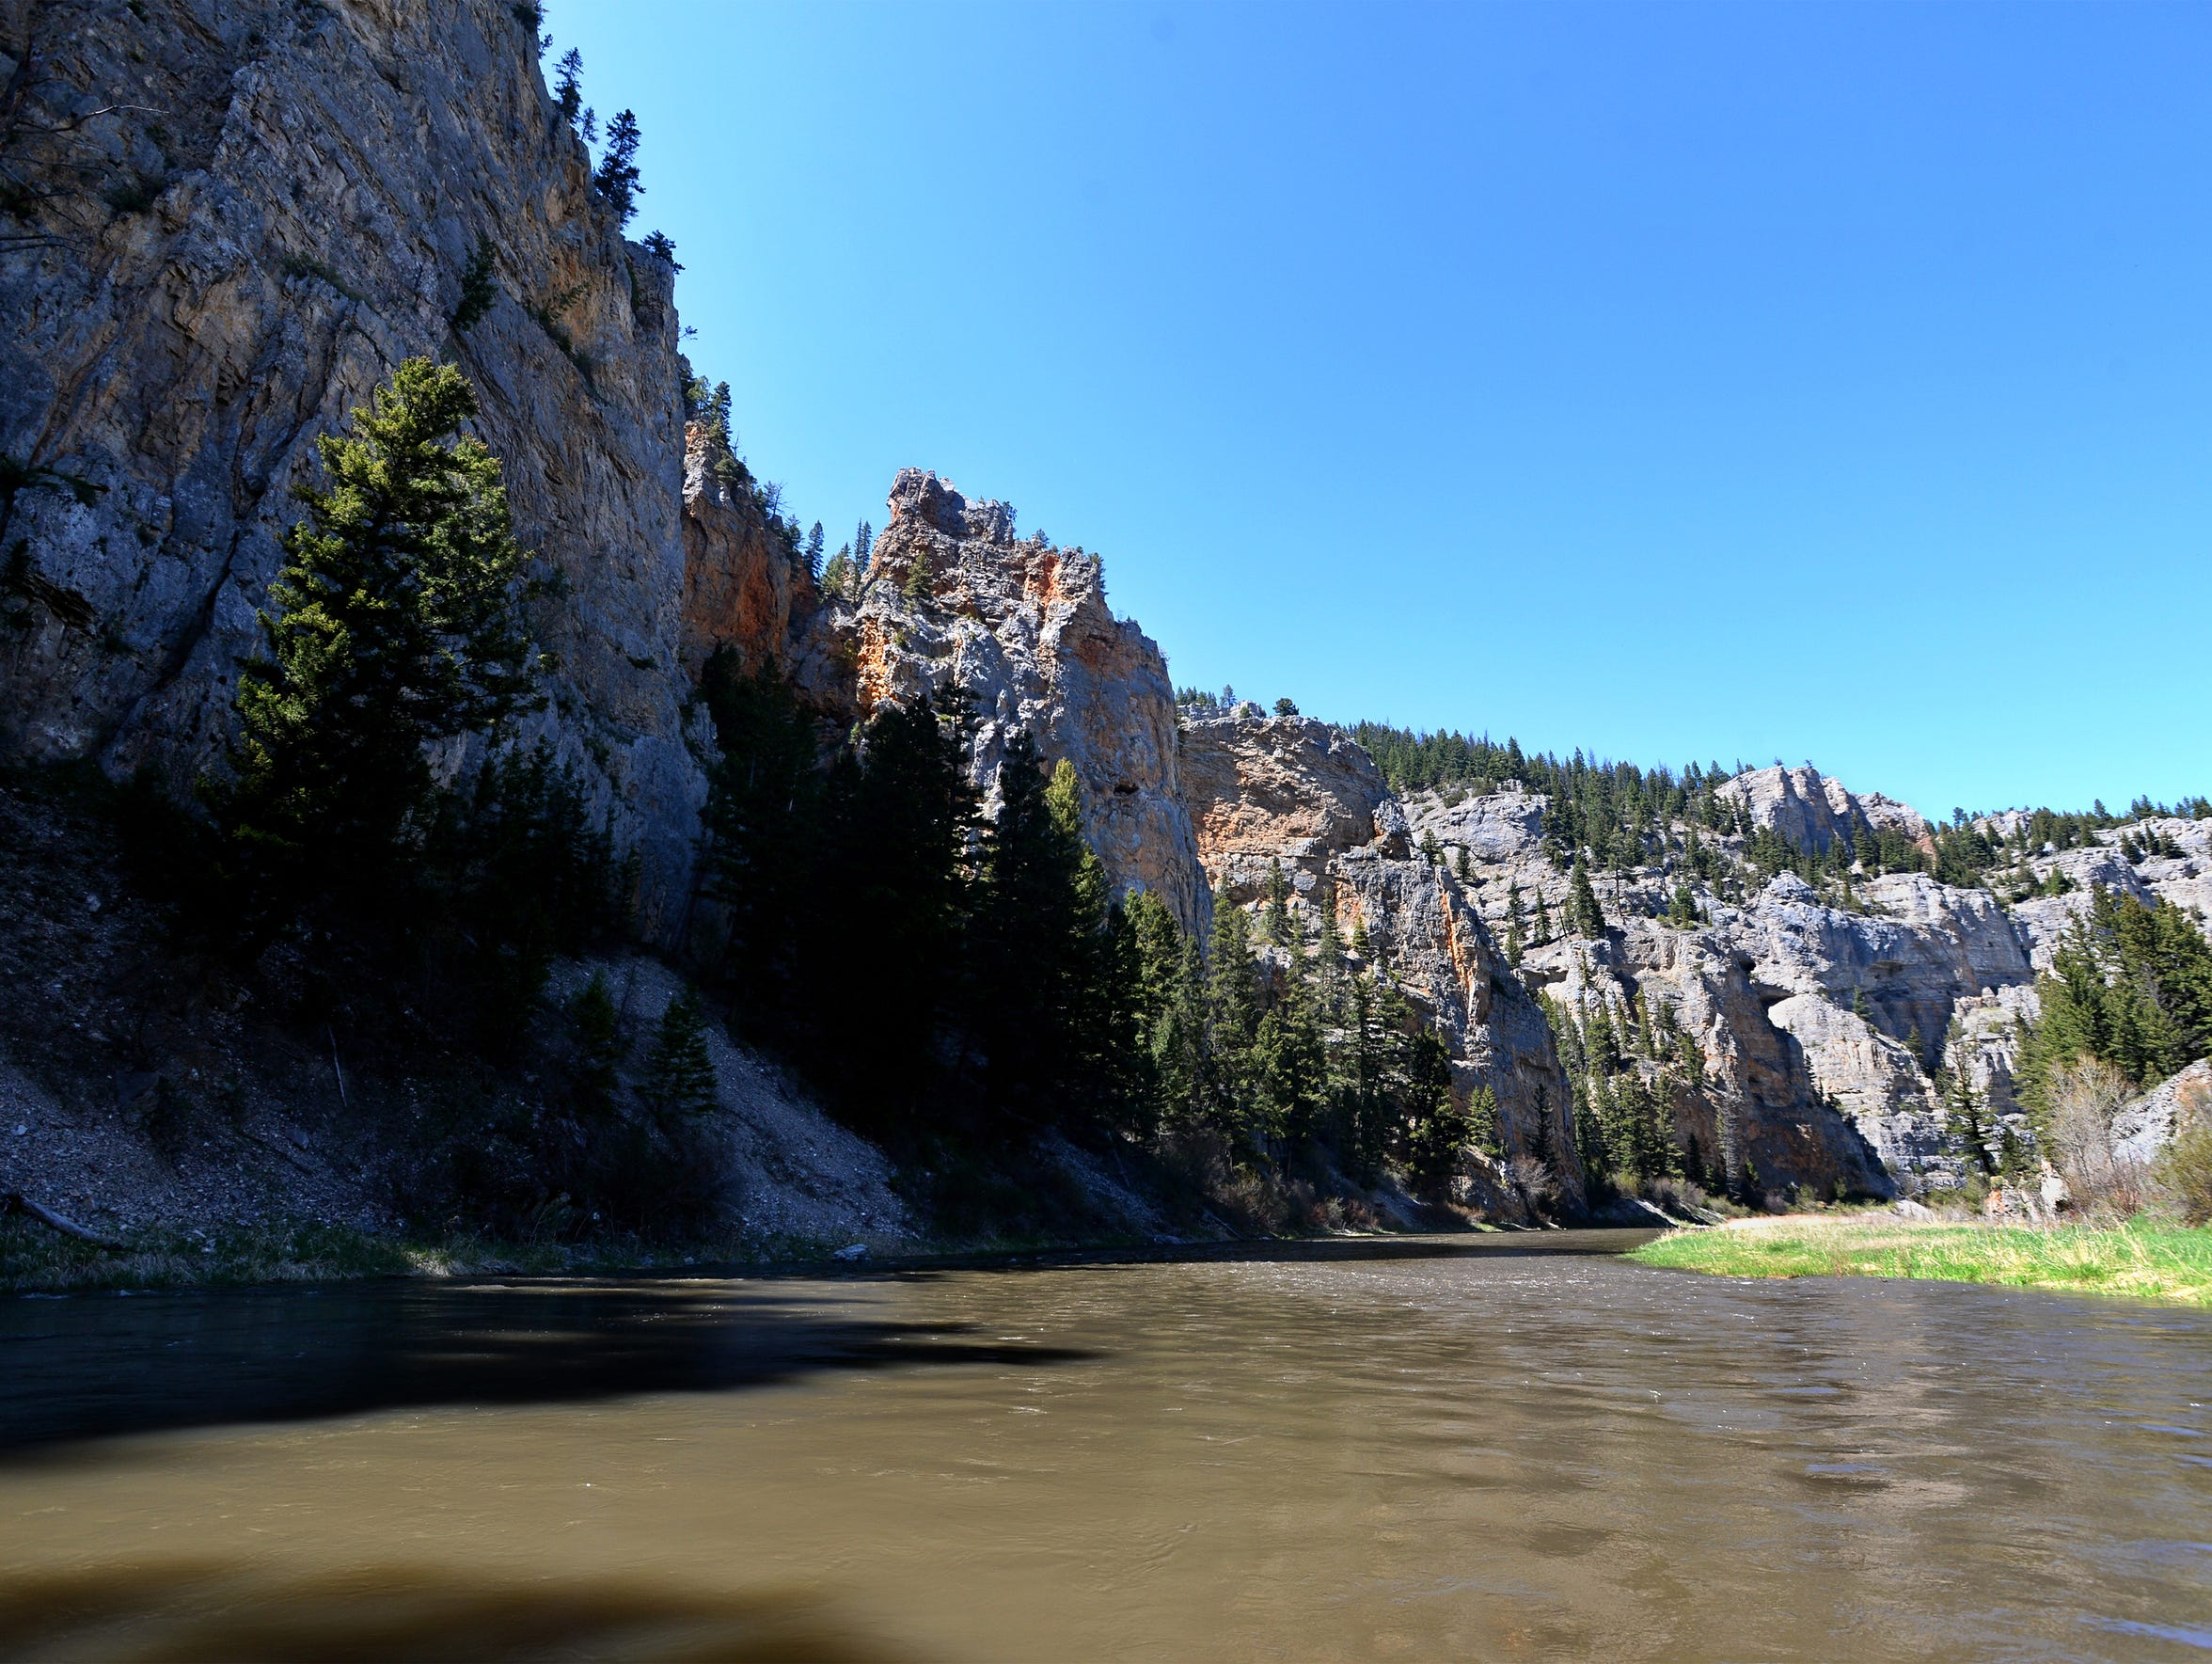 A 59-mile float down the Smith River begins at Camp